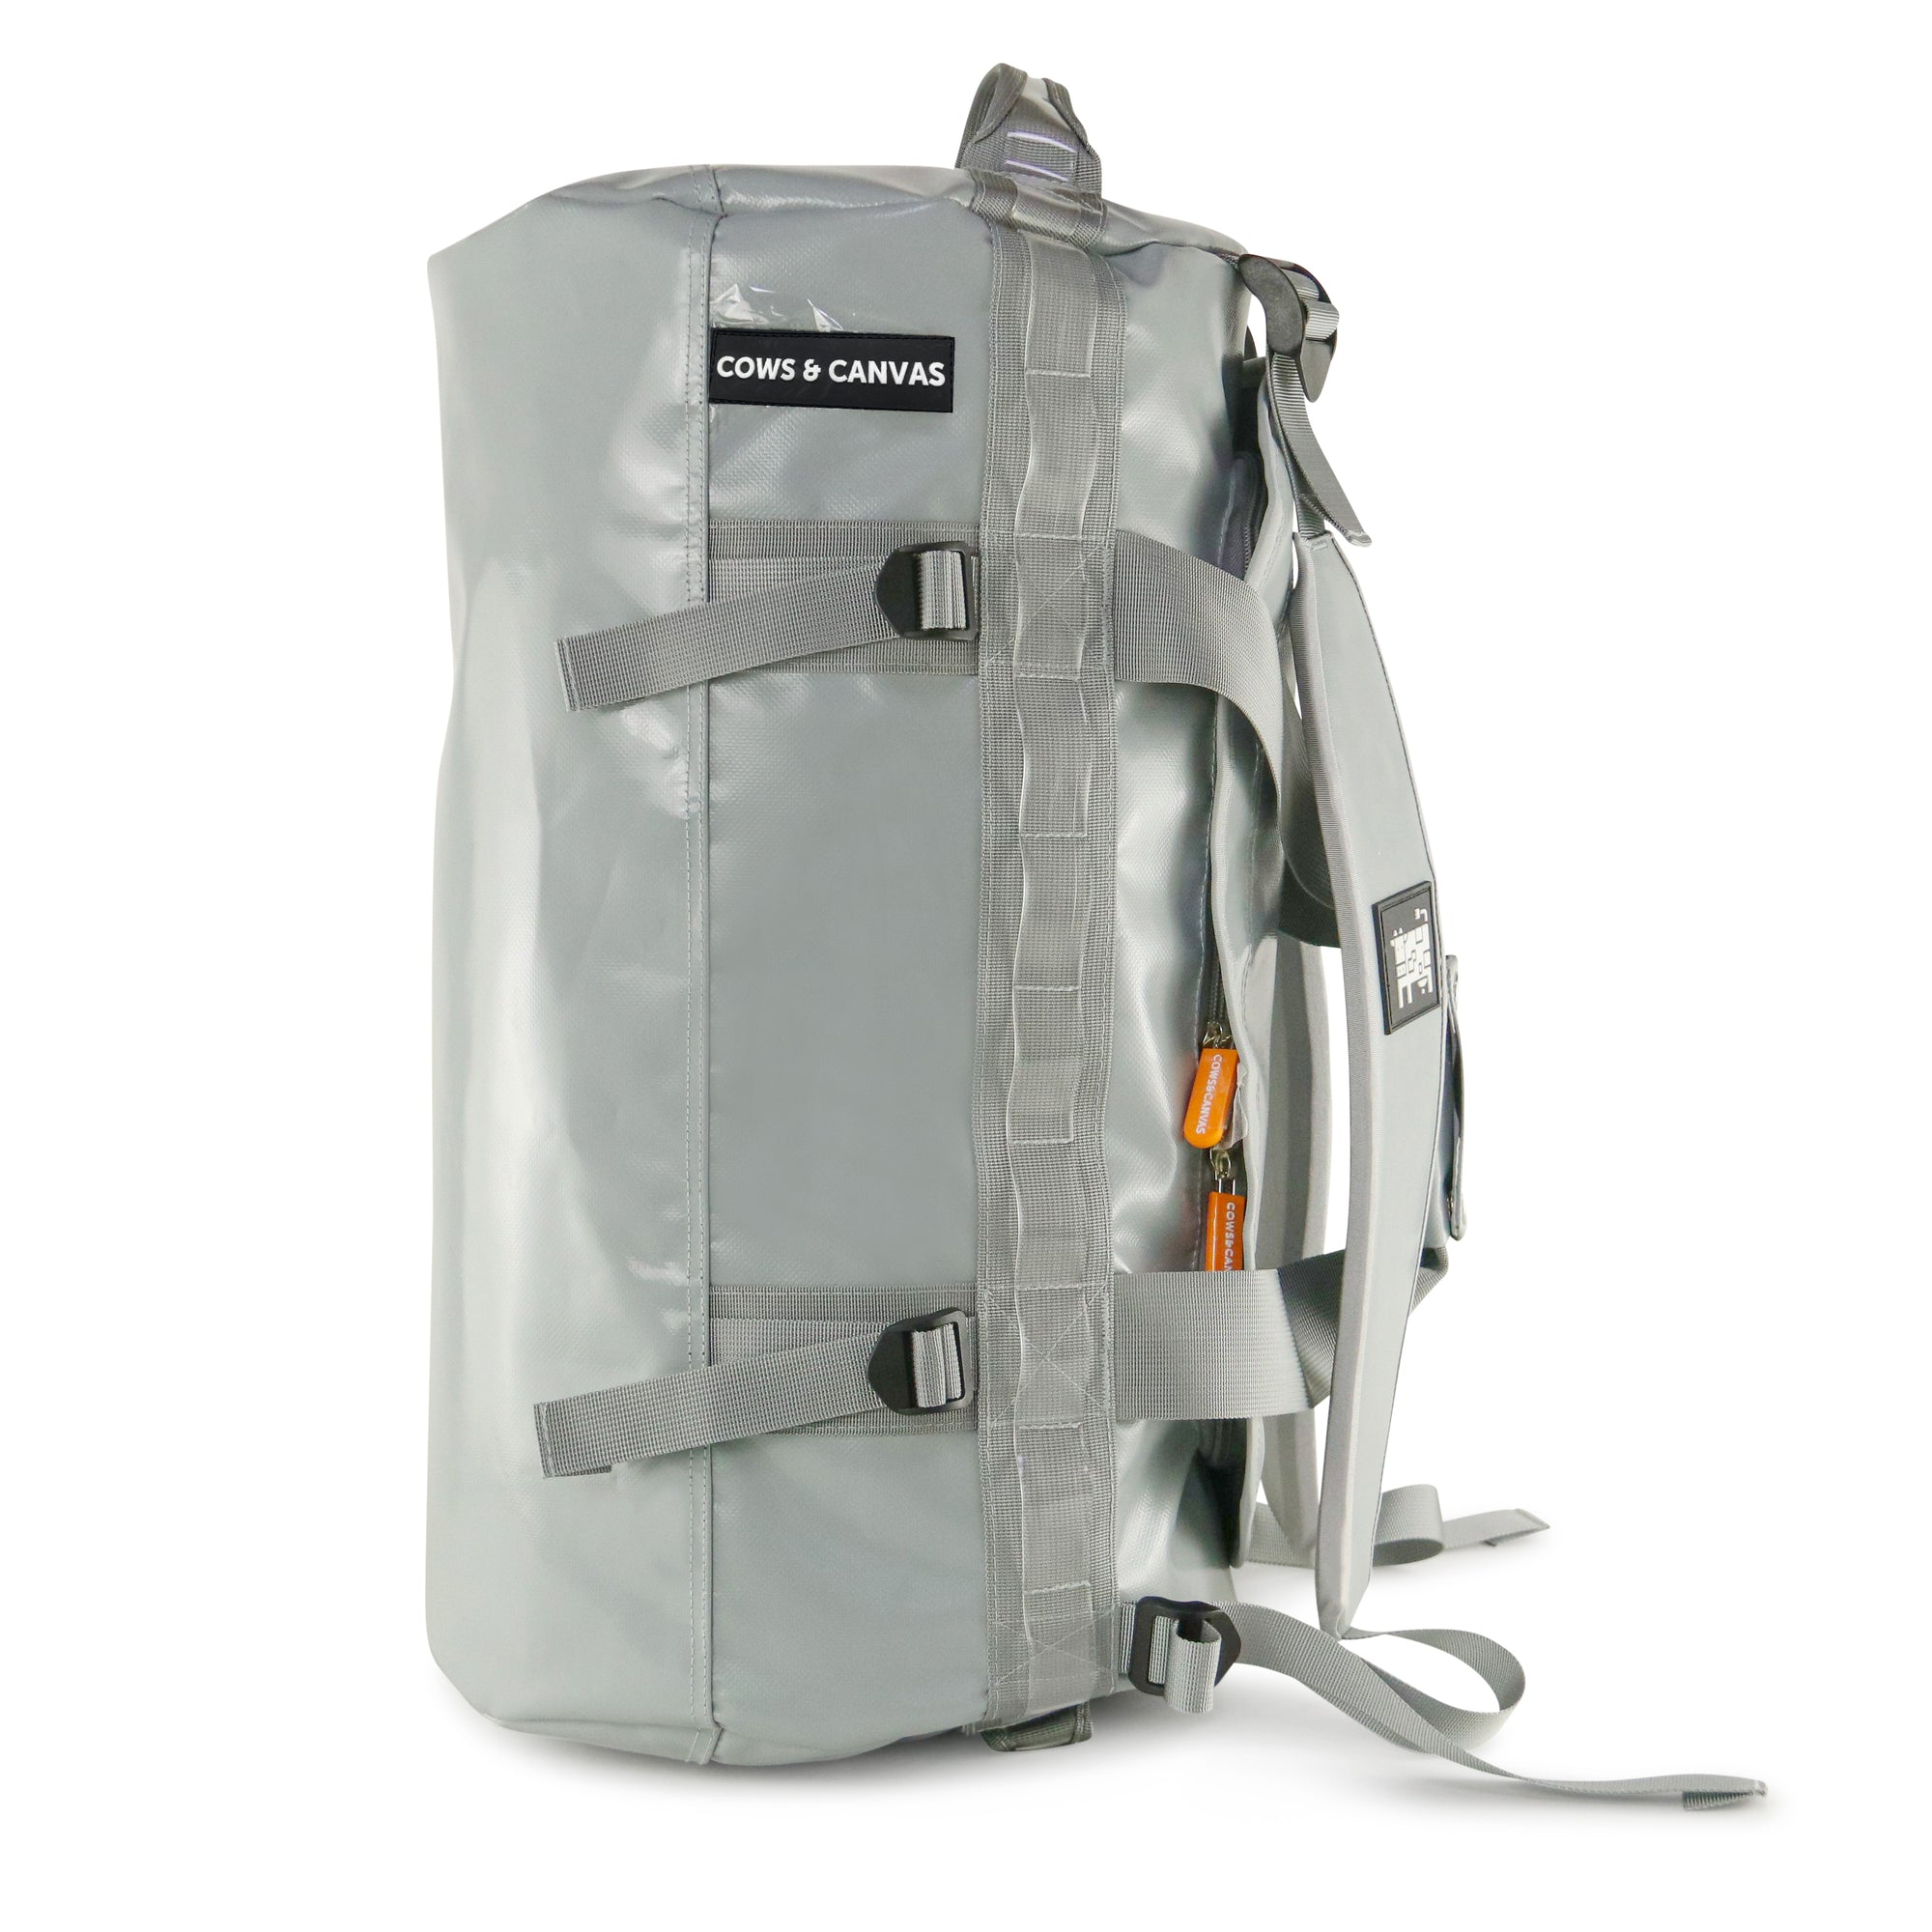 Vertical Grey duffle bag with backpack straps and orange zippers showing